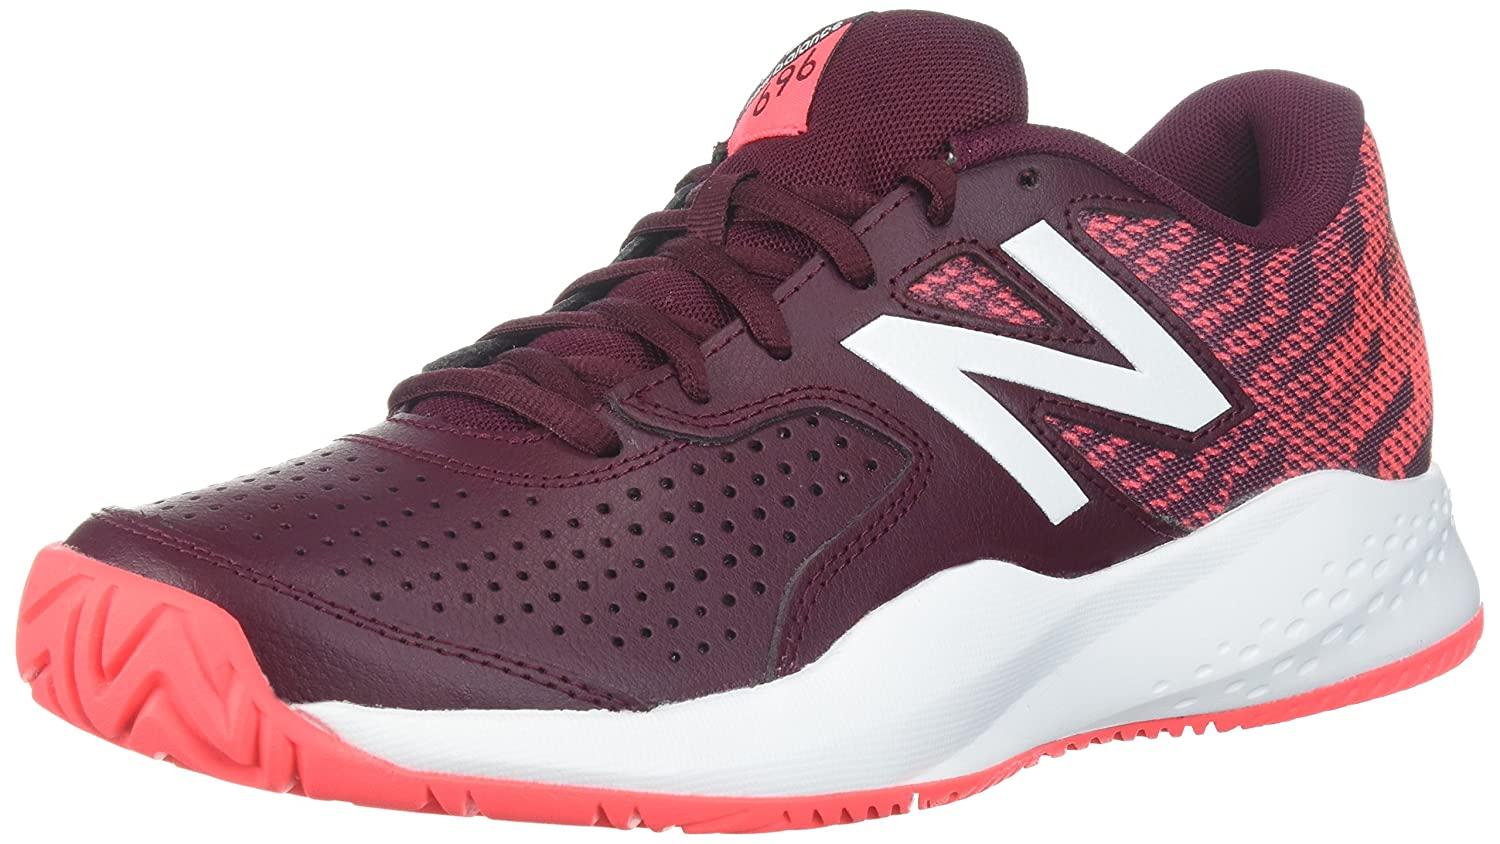 New Balance Women's 696v3 Tennis-Shoes B01N9LCCNR 7 B(M) US|Oxblood/Vivid Coral